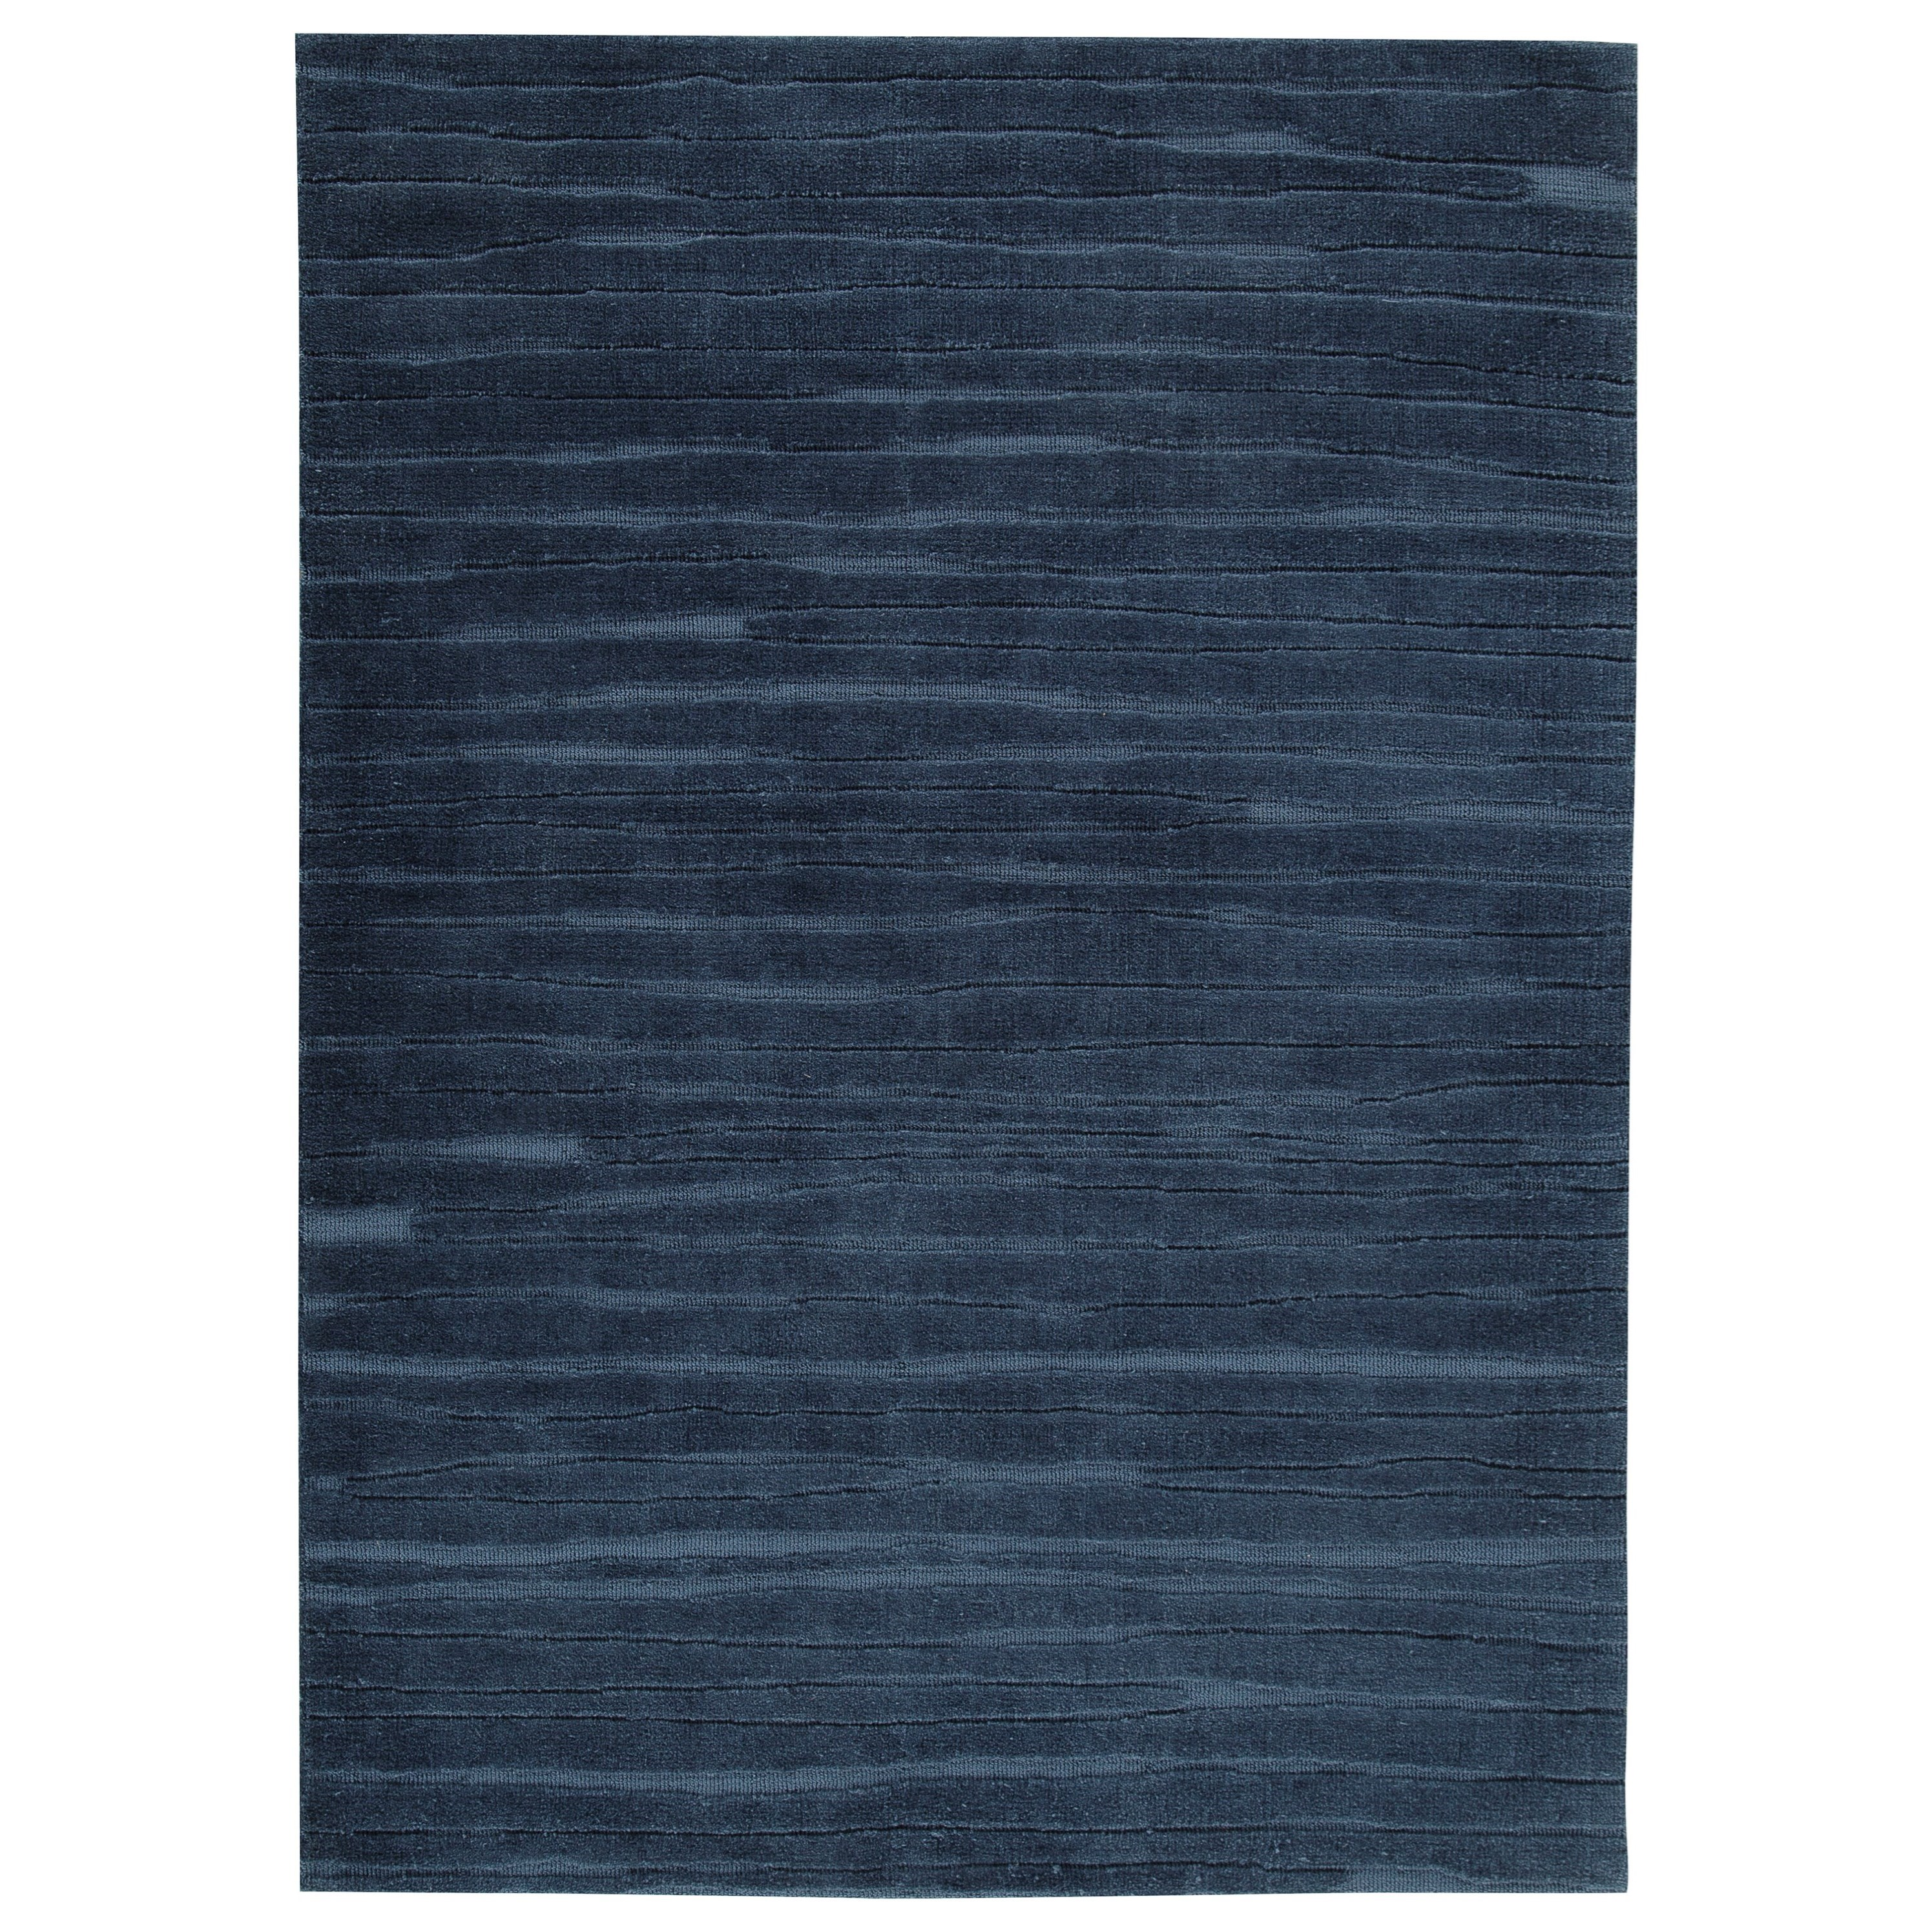 Contemporary Area Rugs Royer Blue Medium Rug by Signature Design by Ashley at Coconis Furniture & Mattress 1st